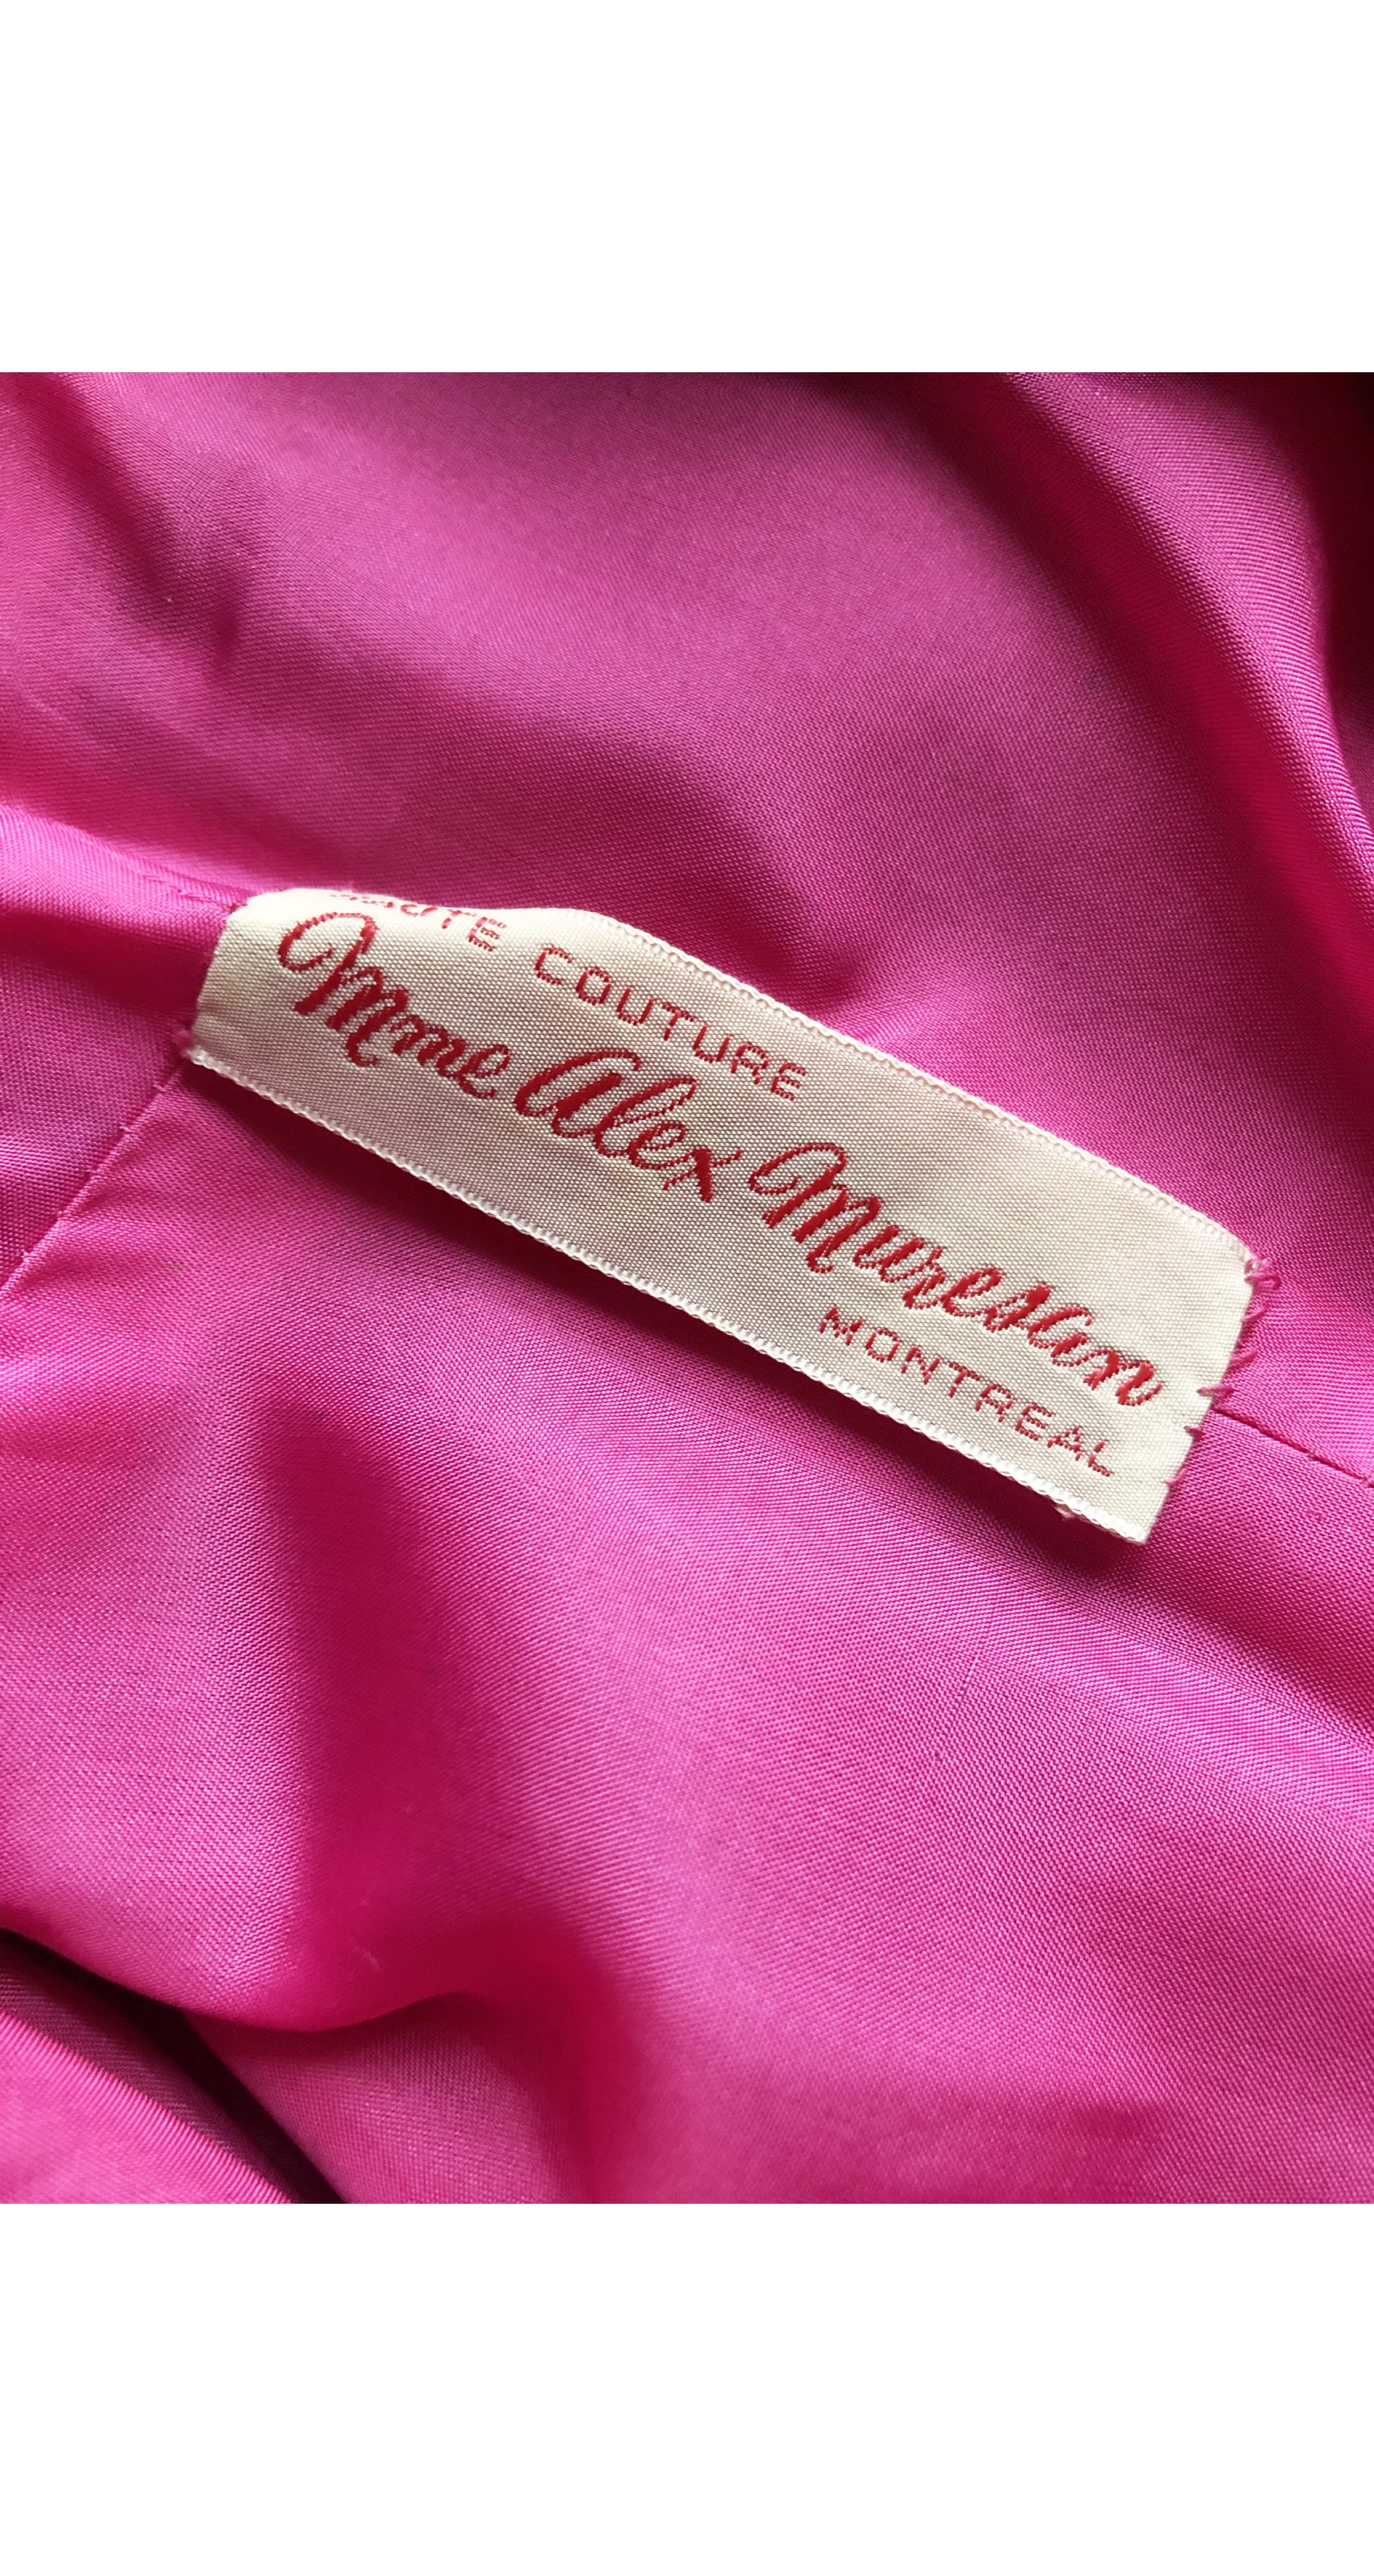 1980s Couture Fuchsia Silk Cocktail Dress